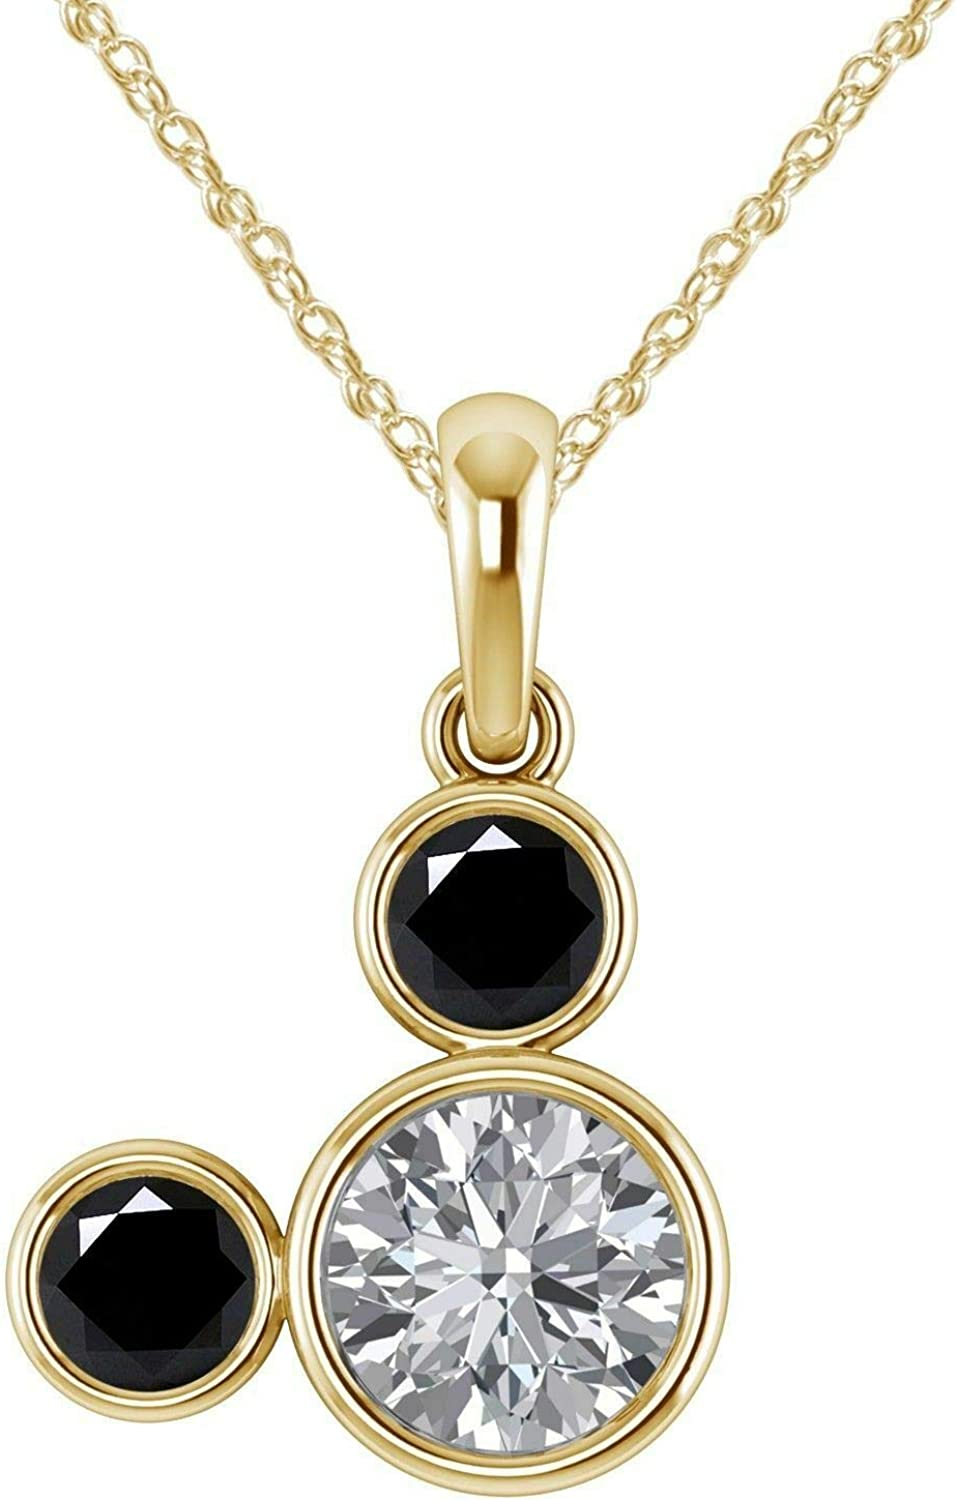 14K Black Gold Plated Simulated Diamond Studded Fashion Pendant Necklace with Chain Jewelry